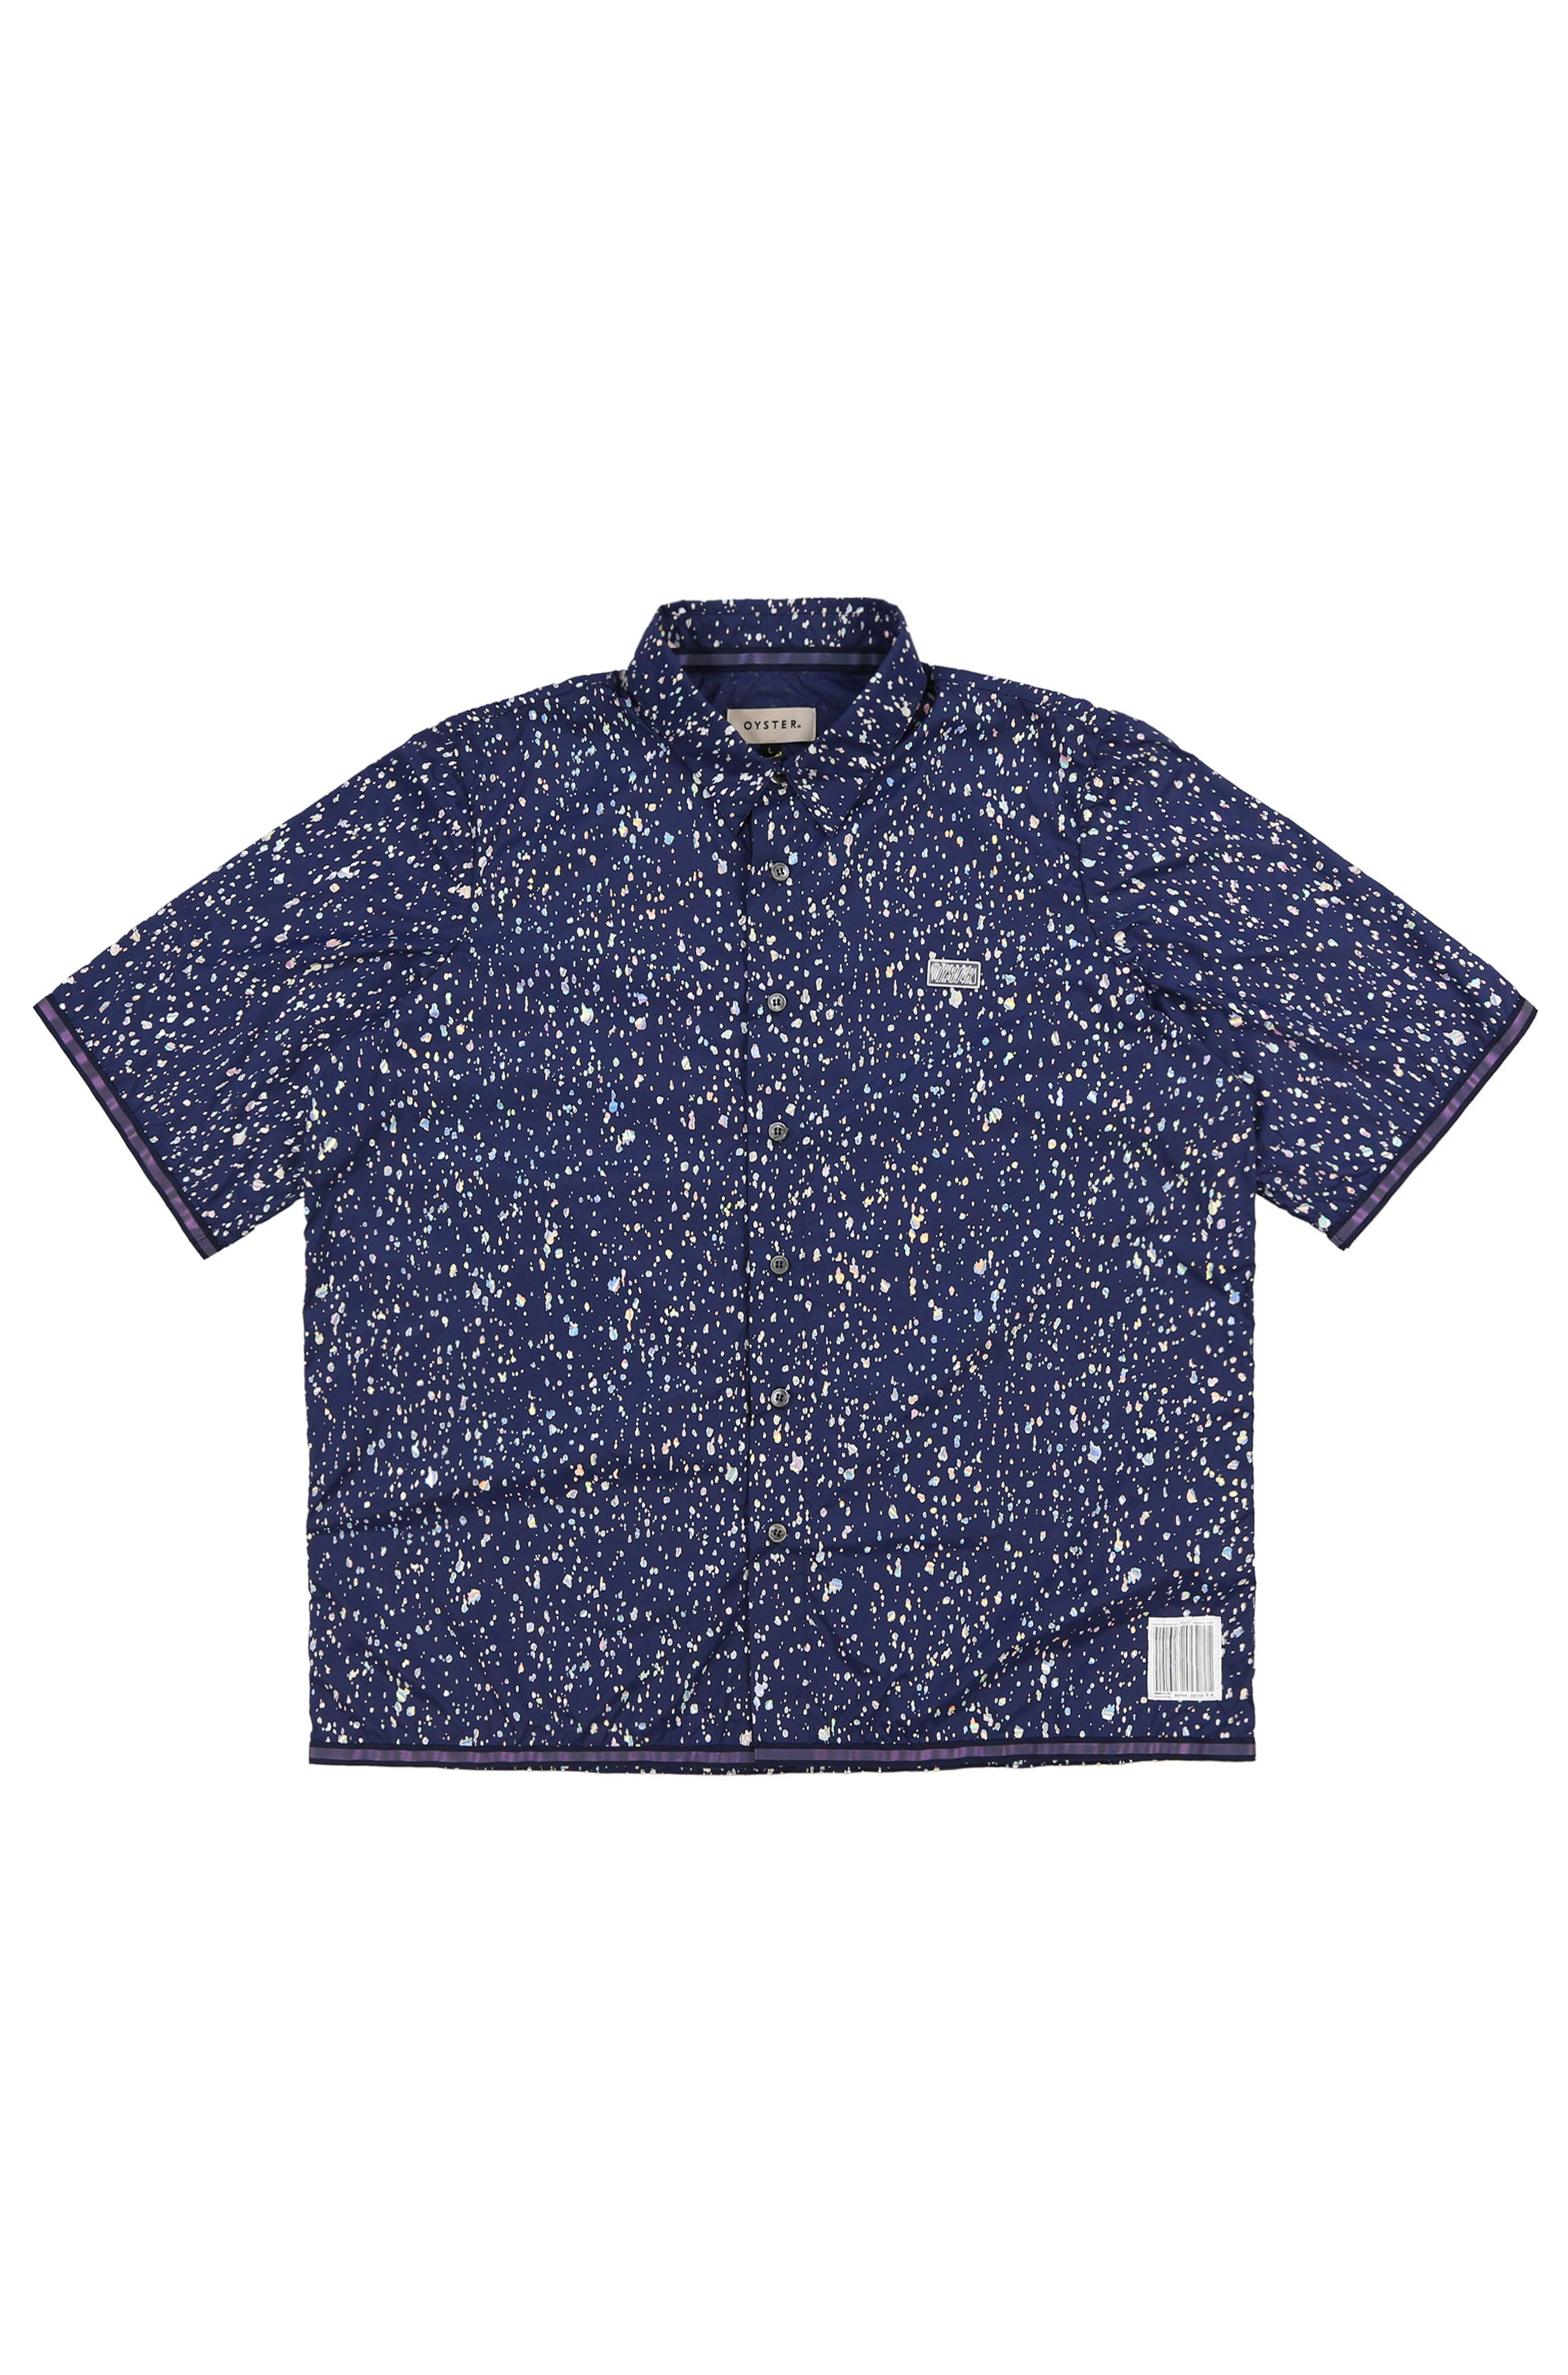 Oyster Pearl Splatter SS Button Up (Navy Iridescent)